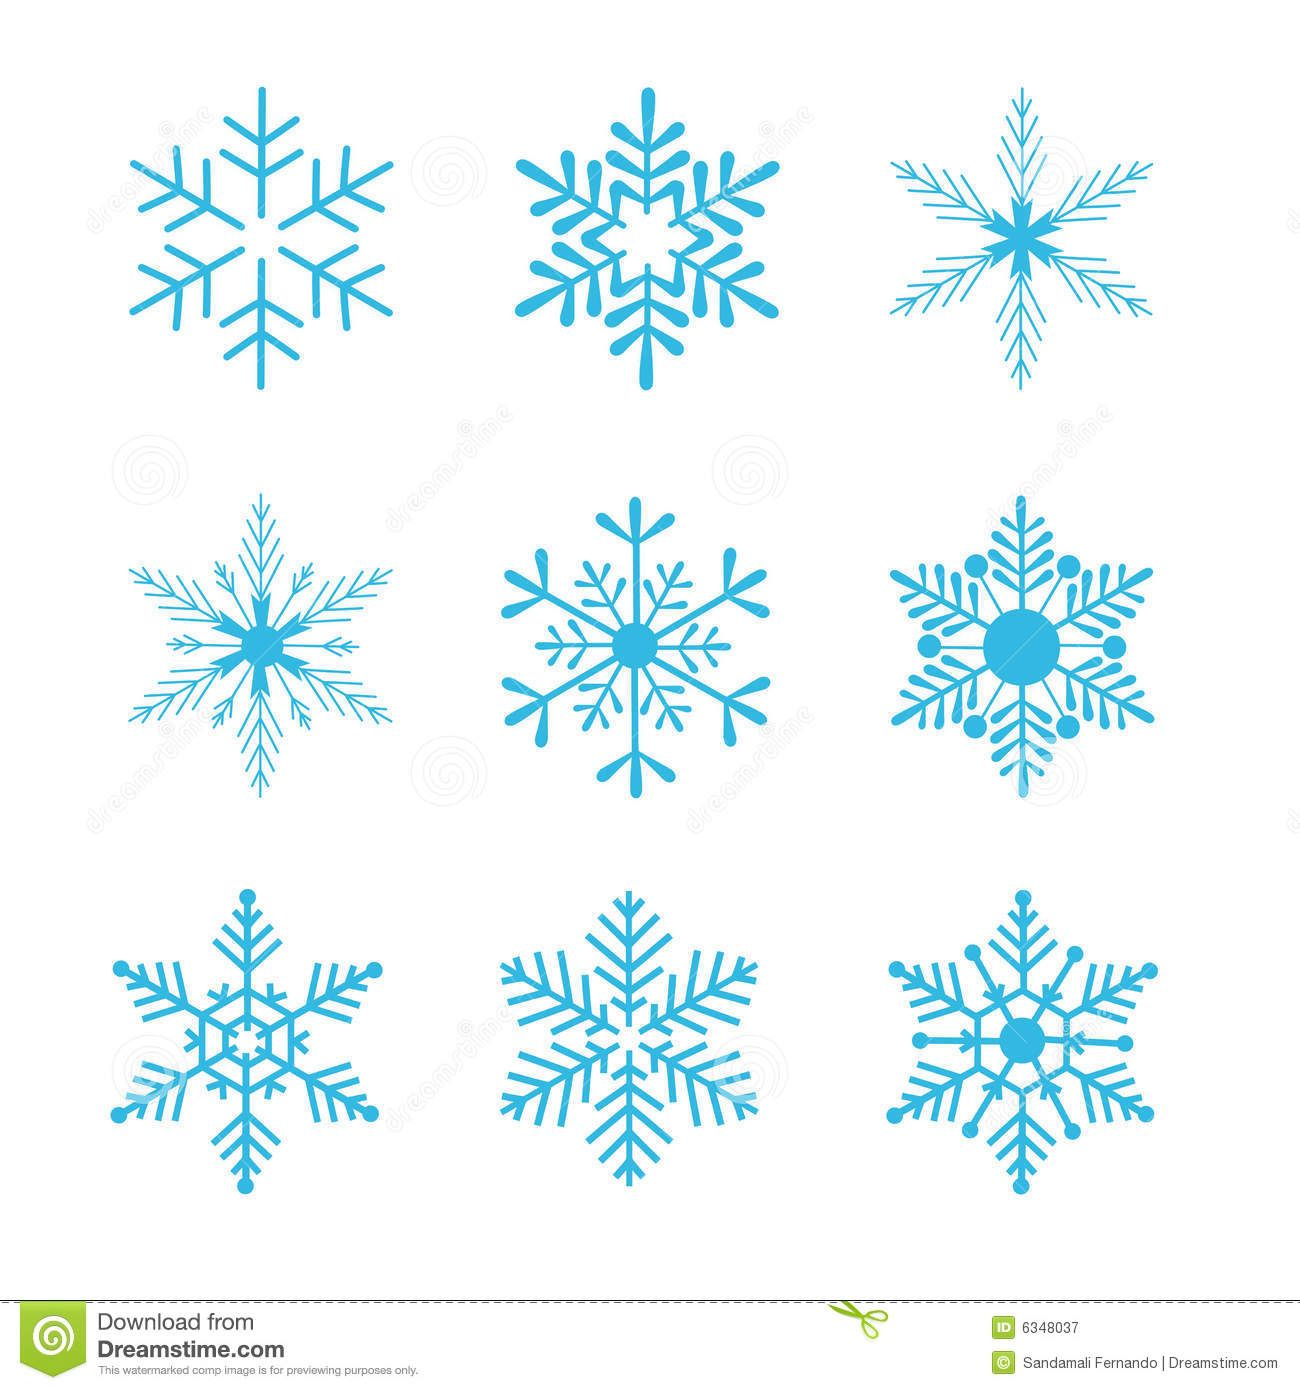 Illustration About Collection Of Snowflakes Vector Illustration Isolated On White Background Illustration In 2020 Snowflakes Drawing Snowflakes Art Crystal Drawing